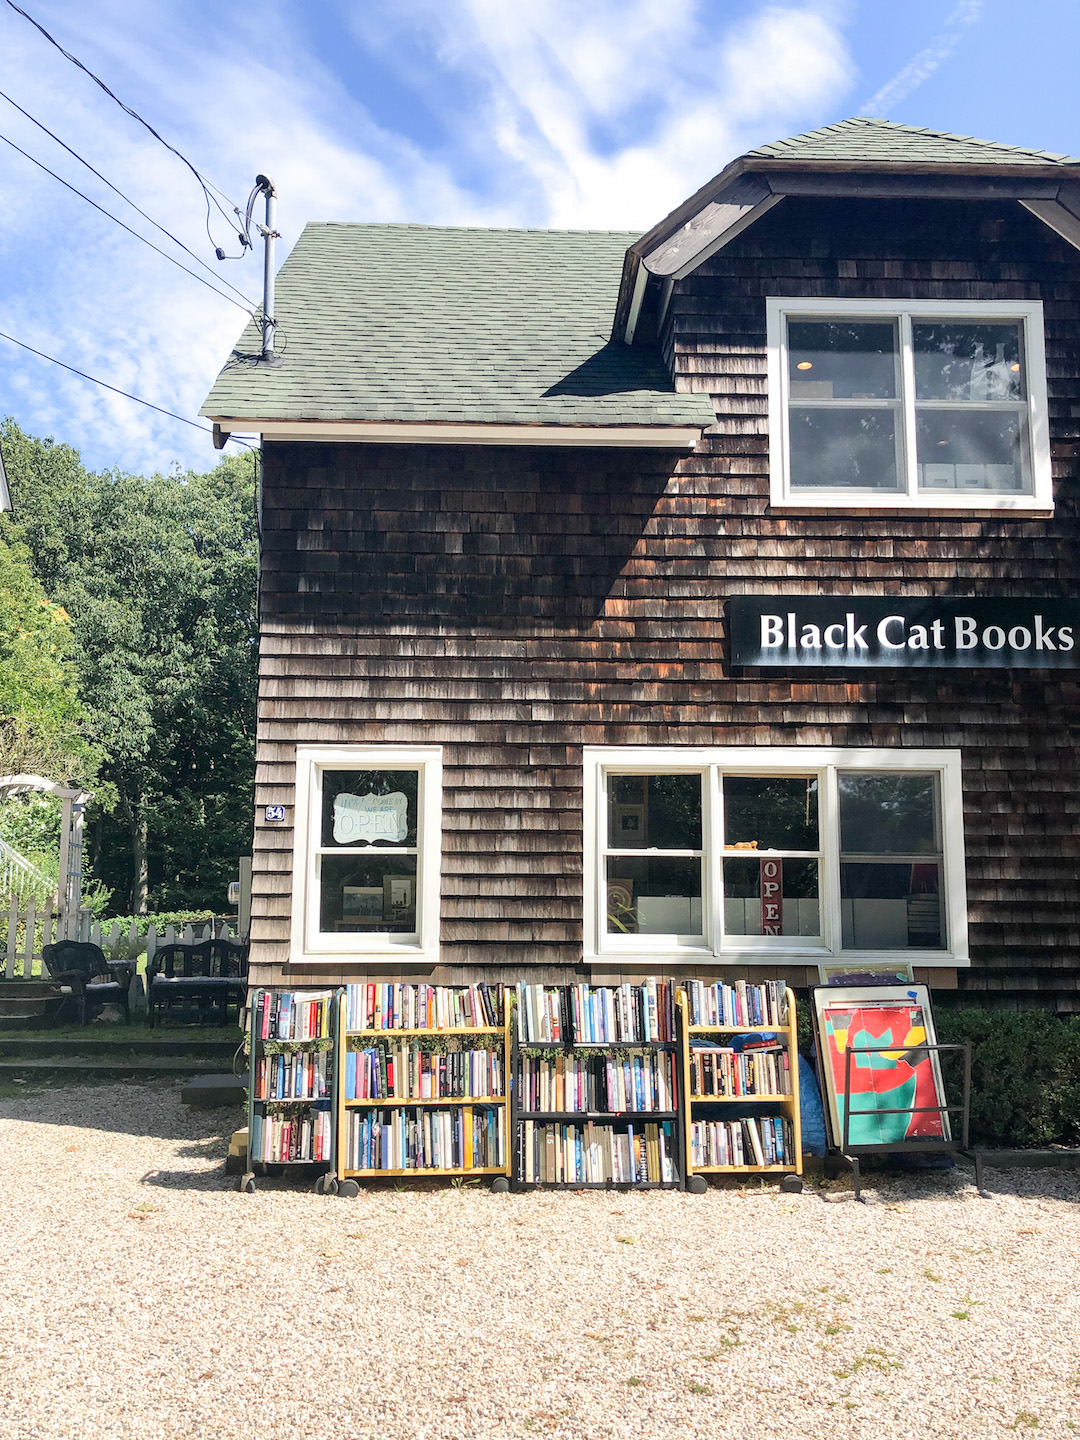 Black Cat Books on Shelter Island